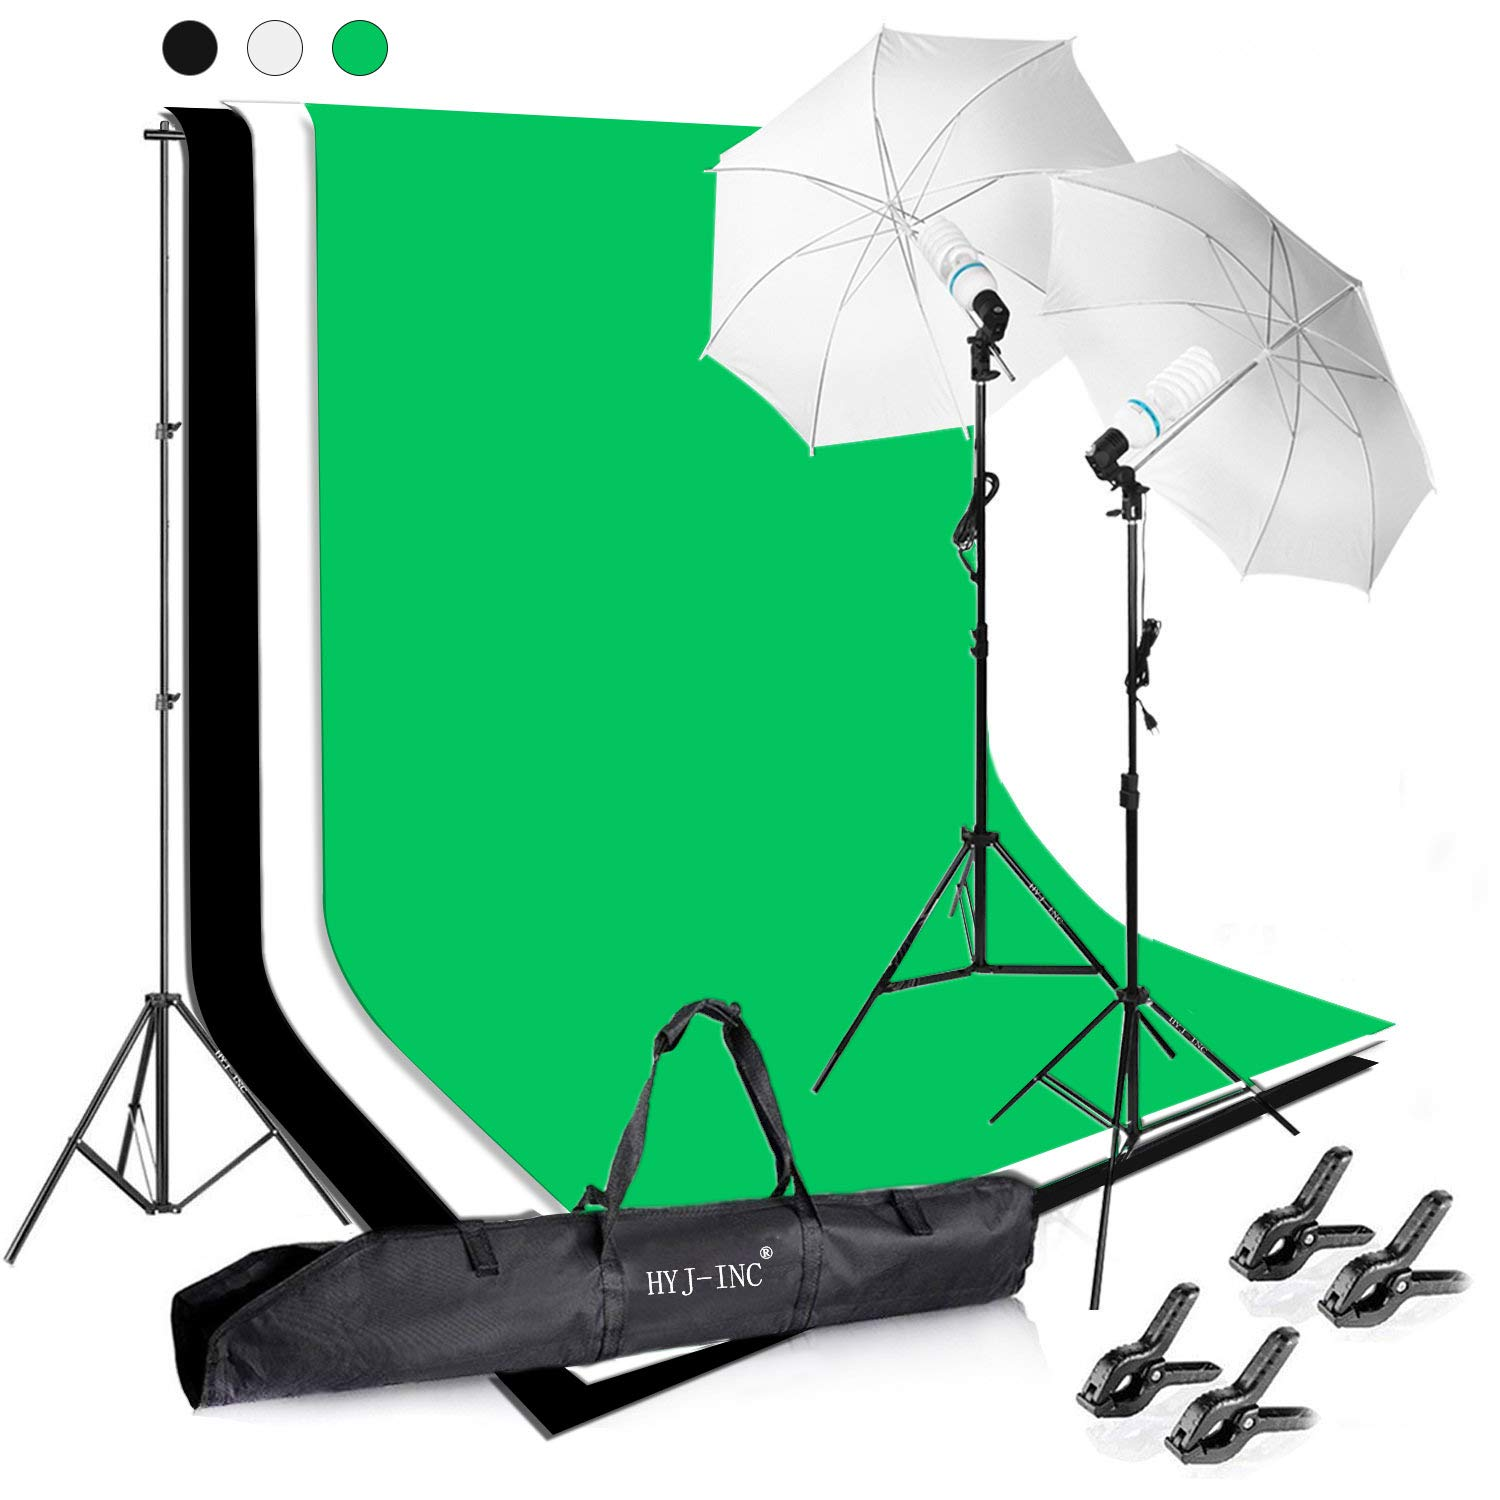 HYJ-INC Photography Photo Video Studio Background Stand Support Kit with 3 Muslin Backdrop Kits (White/Black/Chromakey Green Screen Kit),1050W 5500K Daylight Umbrella Lighting Kit with Carry Bag by HYJ-INC